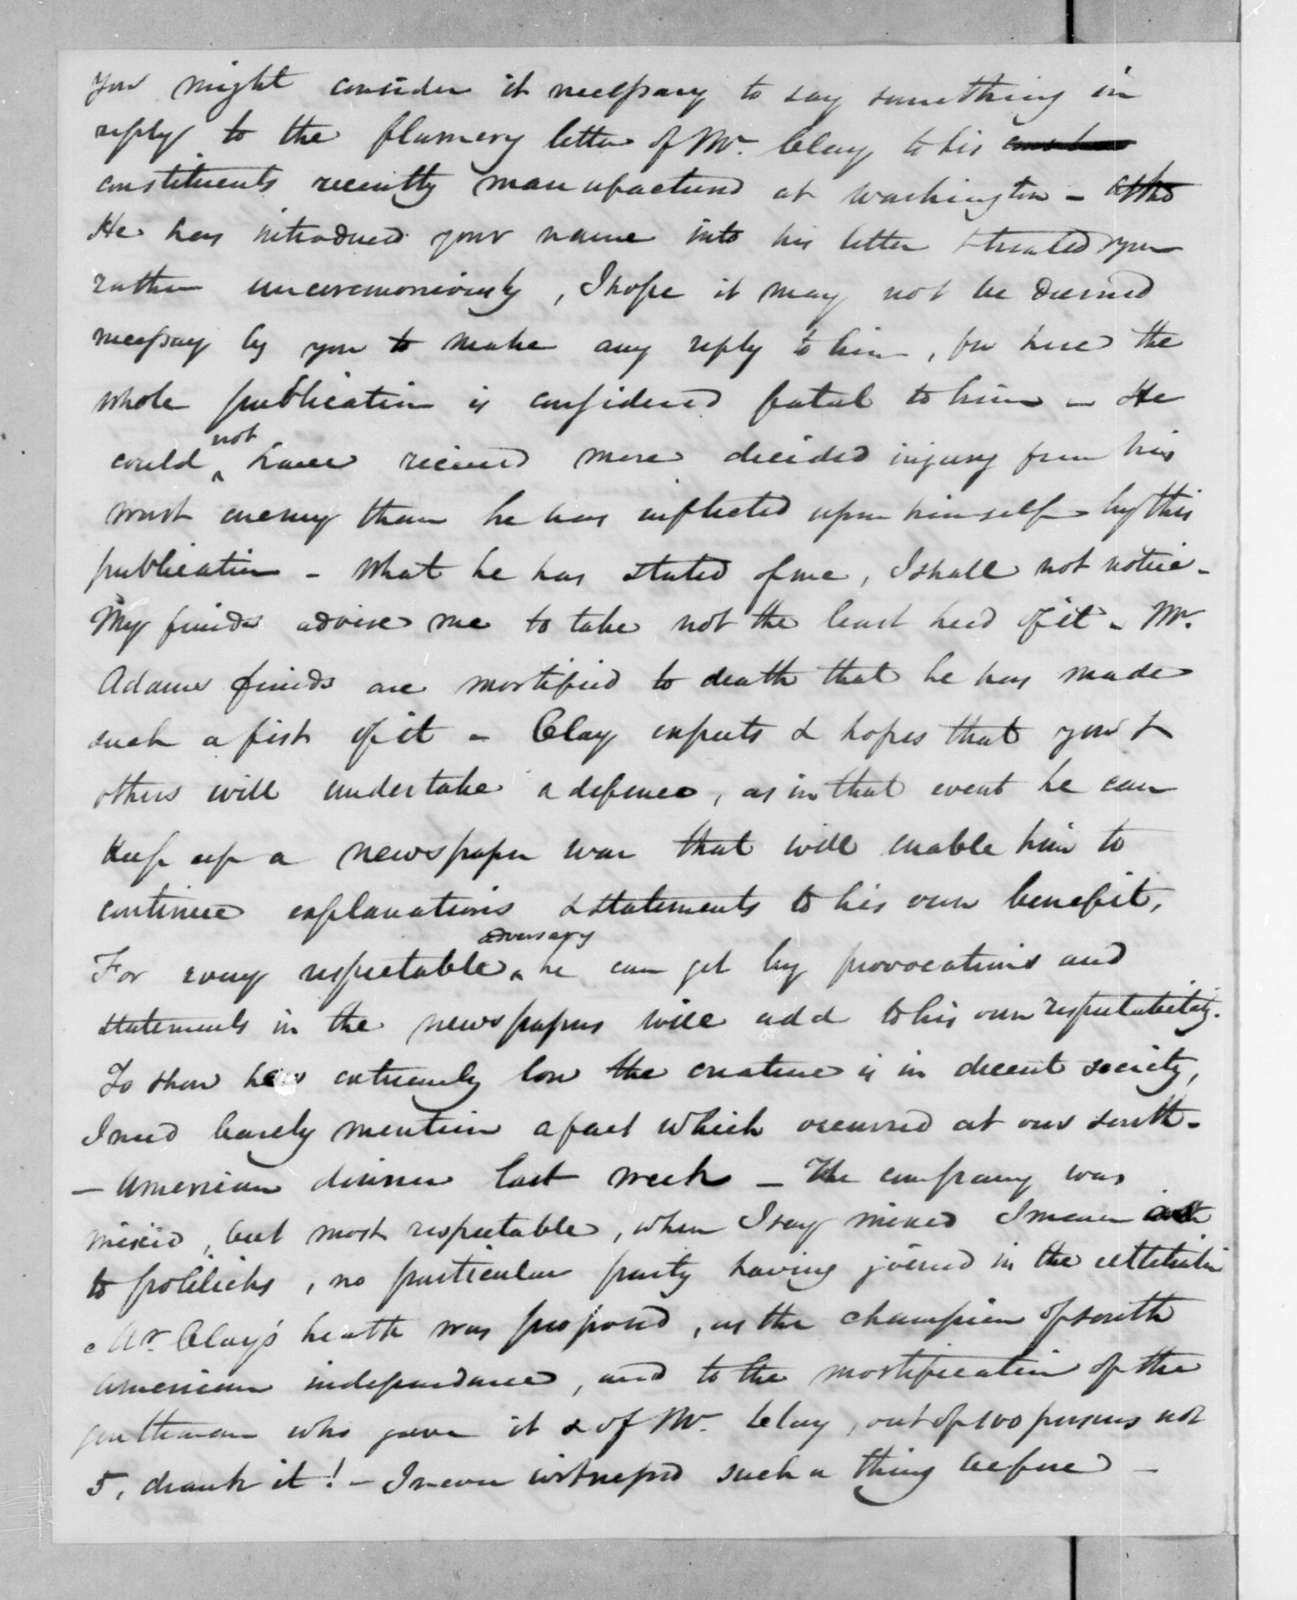 Samuel Swartwout to Andrew Jackson, April 2, 1825